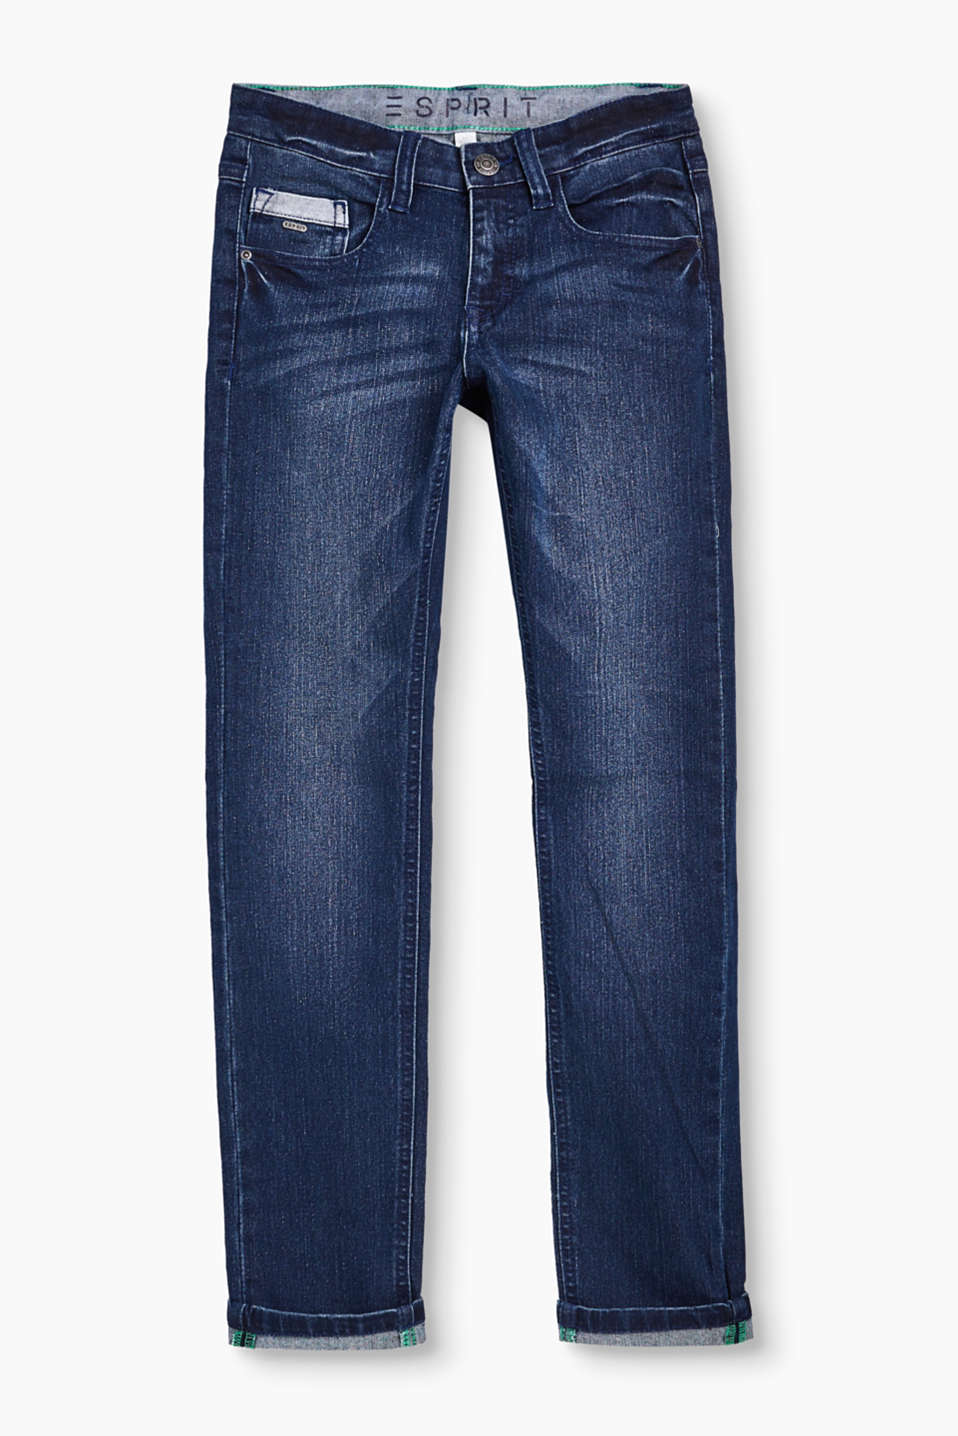 The soft stretch denim in blended cotton makes these 5 pocket jeans mega comfy